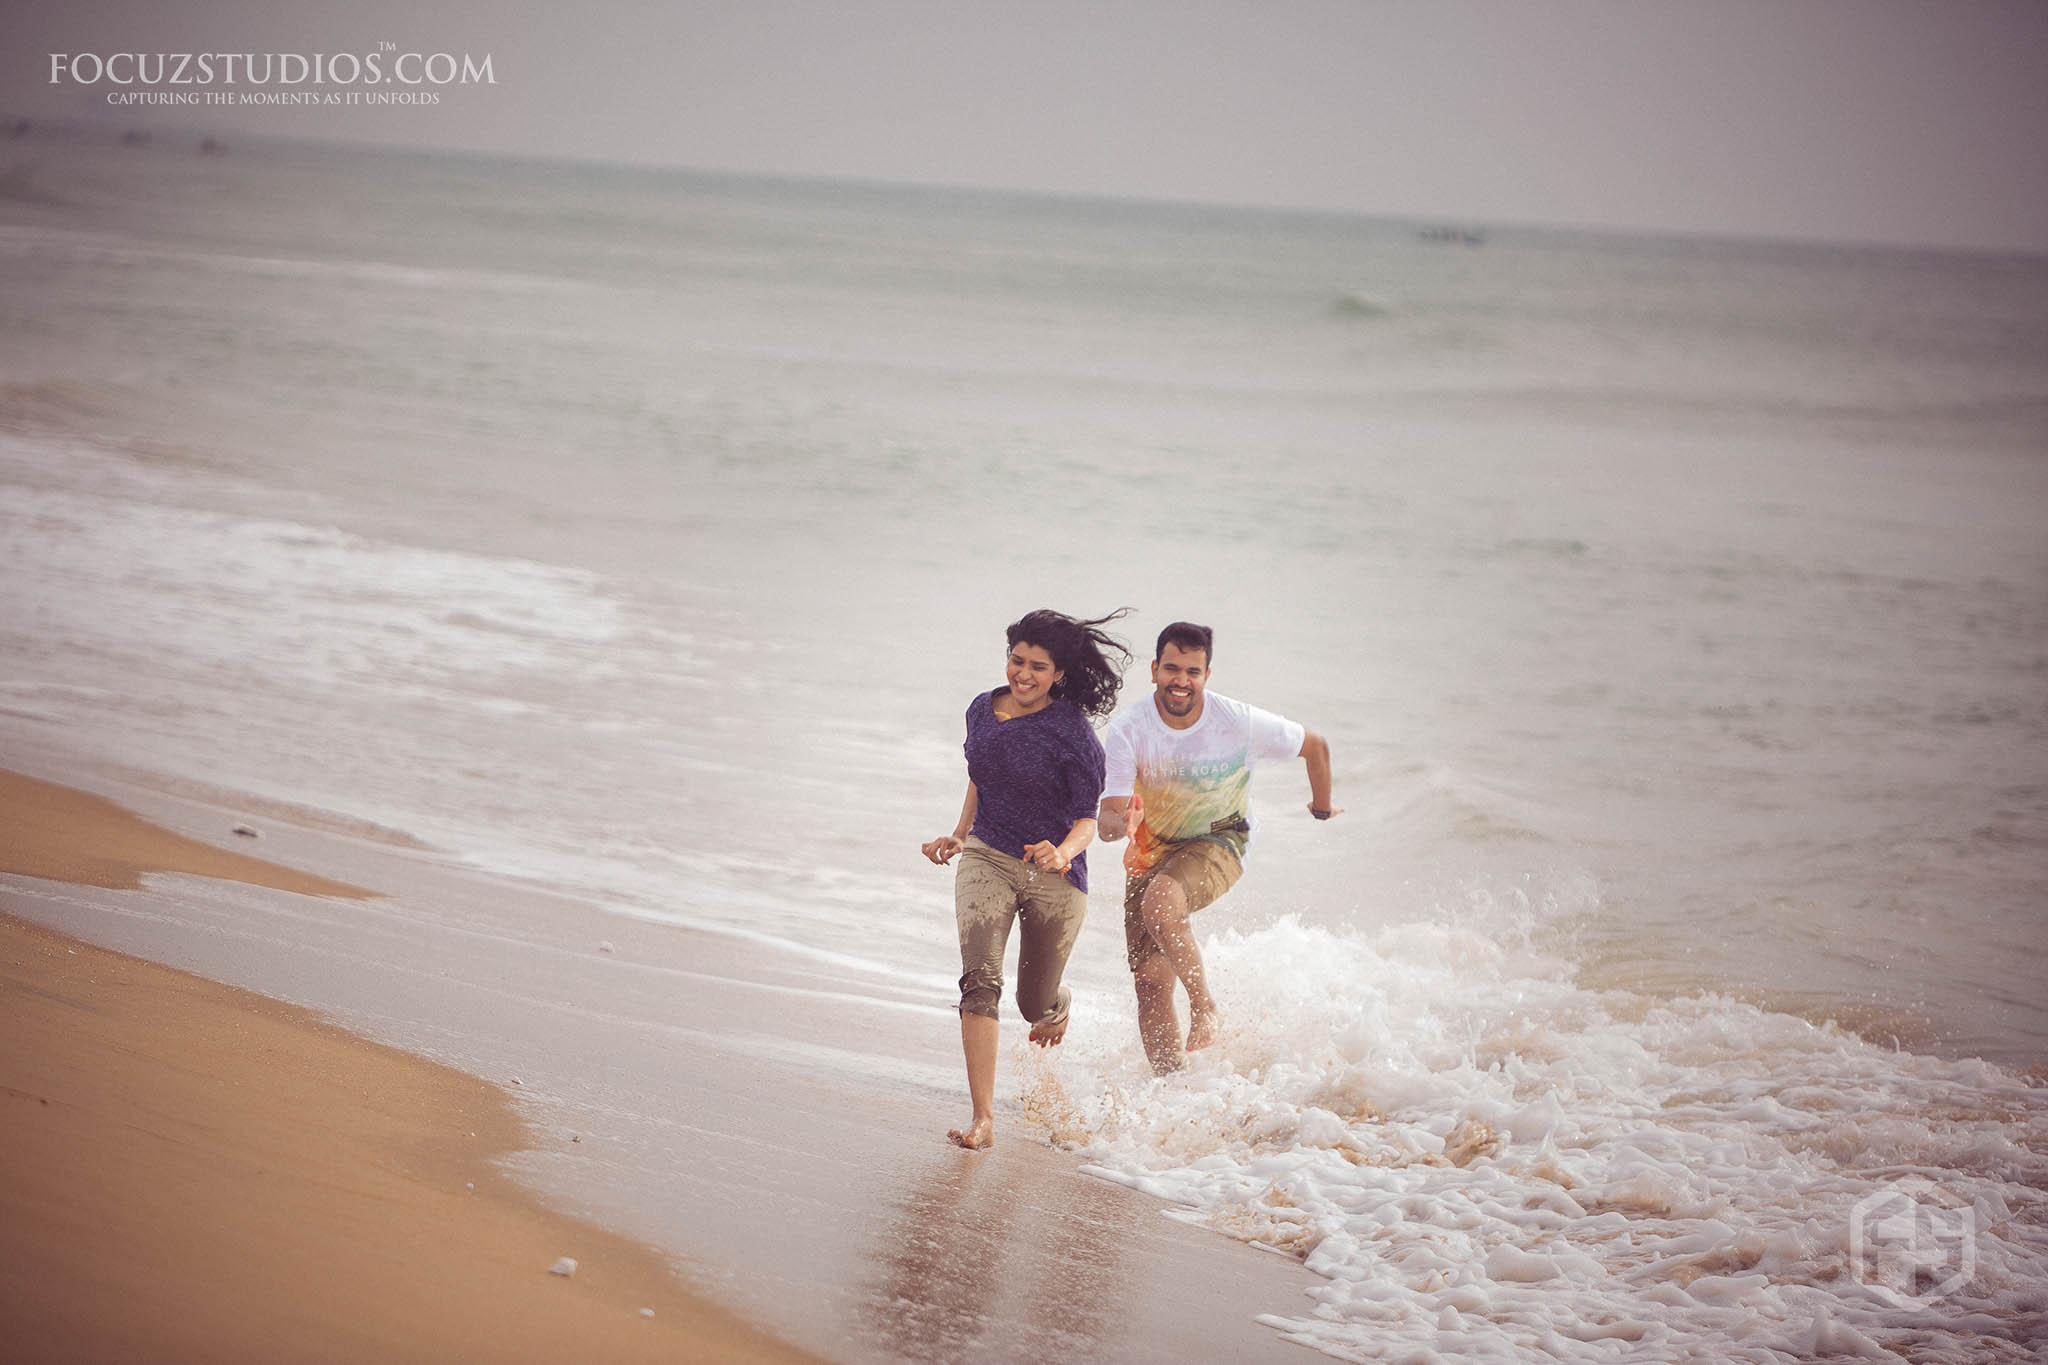 pre-wedding-photoshooting-focuz-studios1